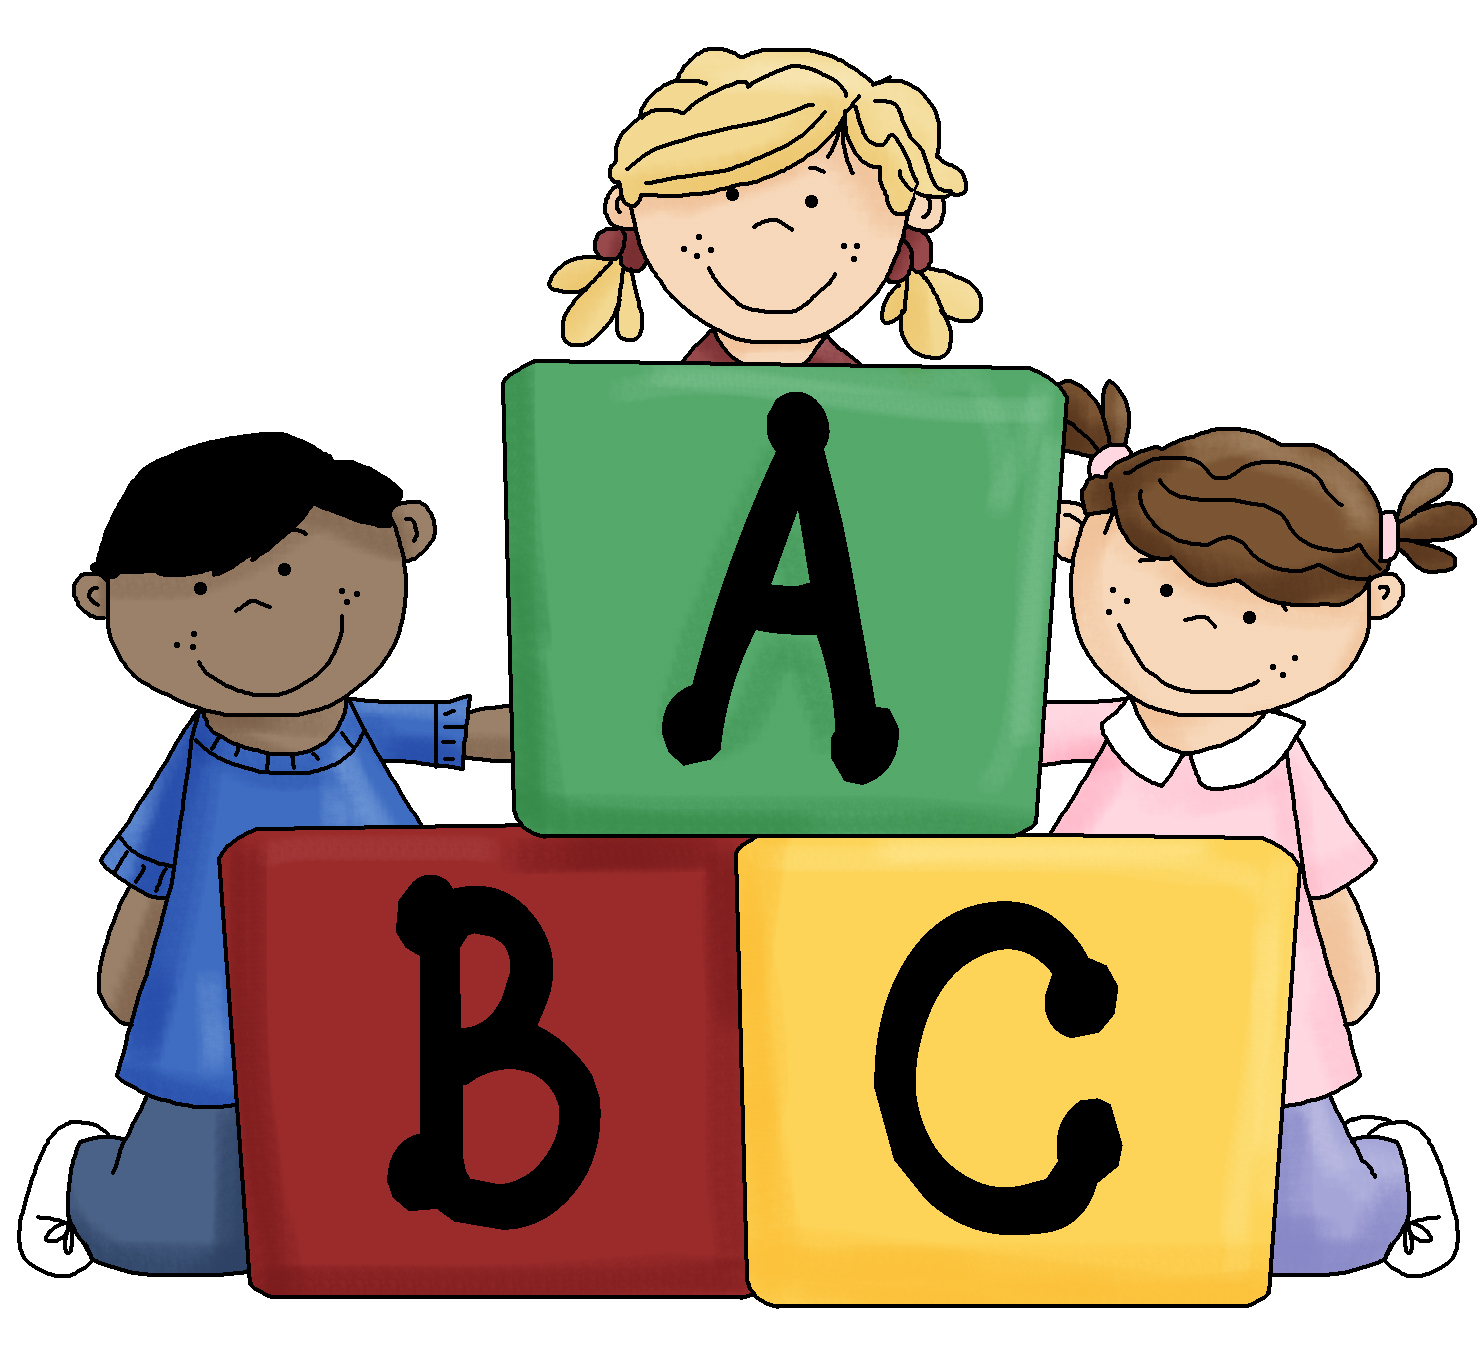 Collection of Abc clipart | Free download best Abc clipart on ... picture free stock